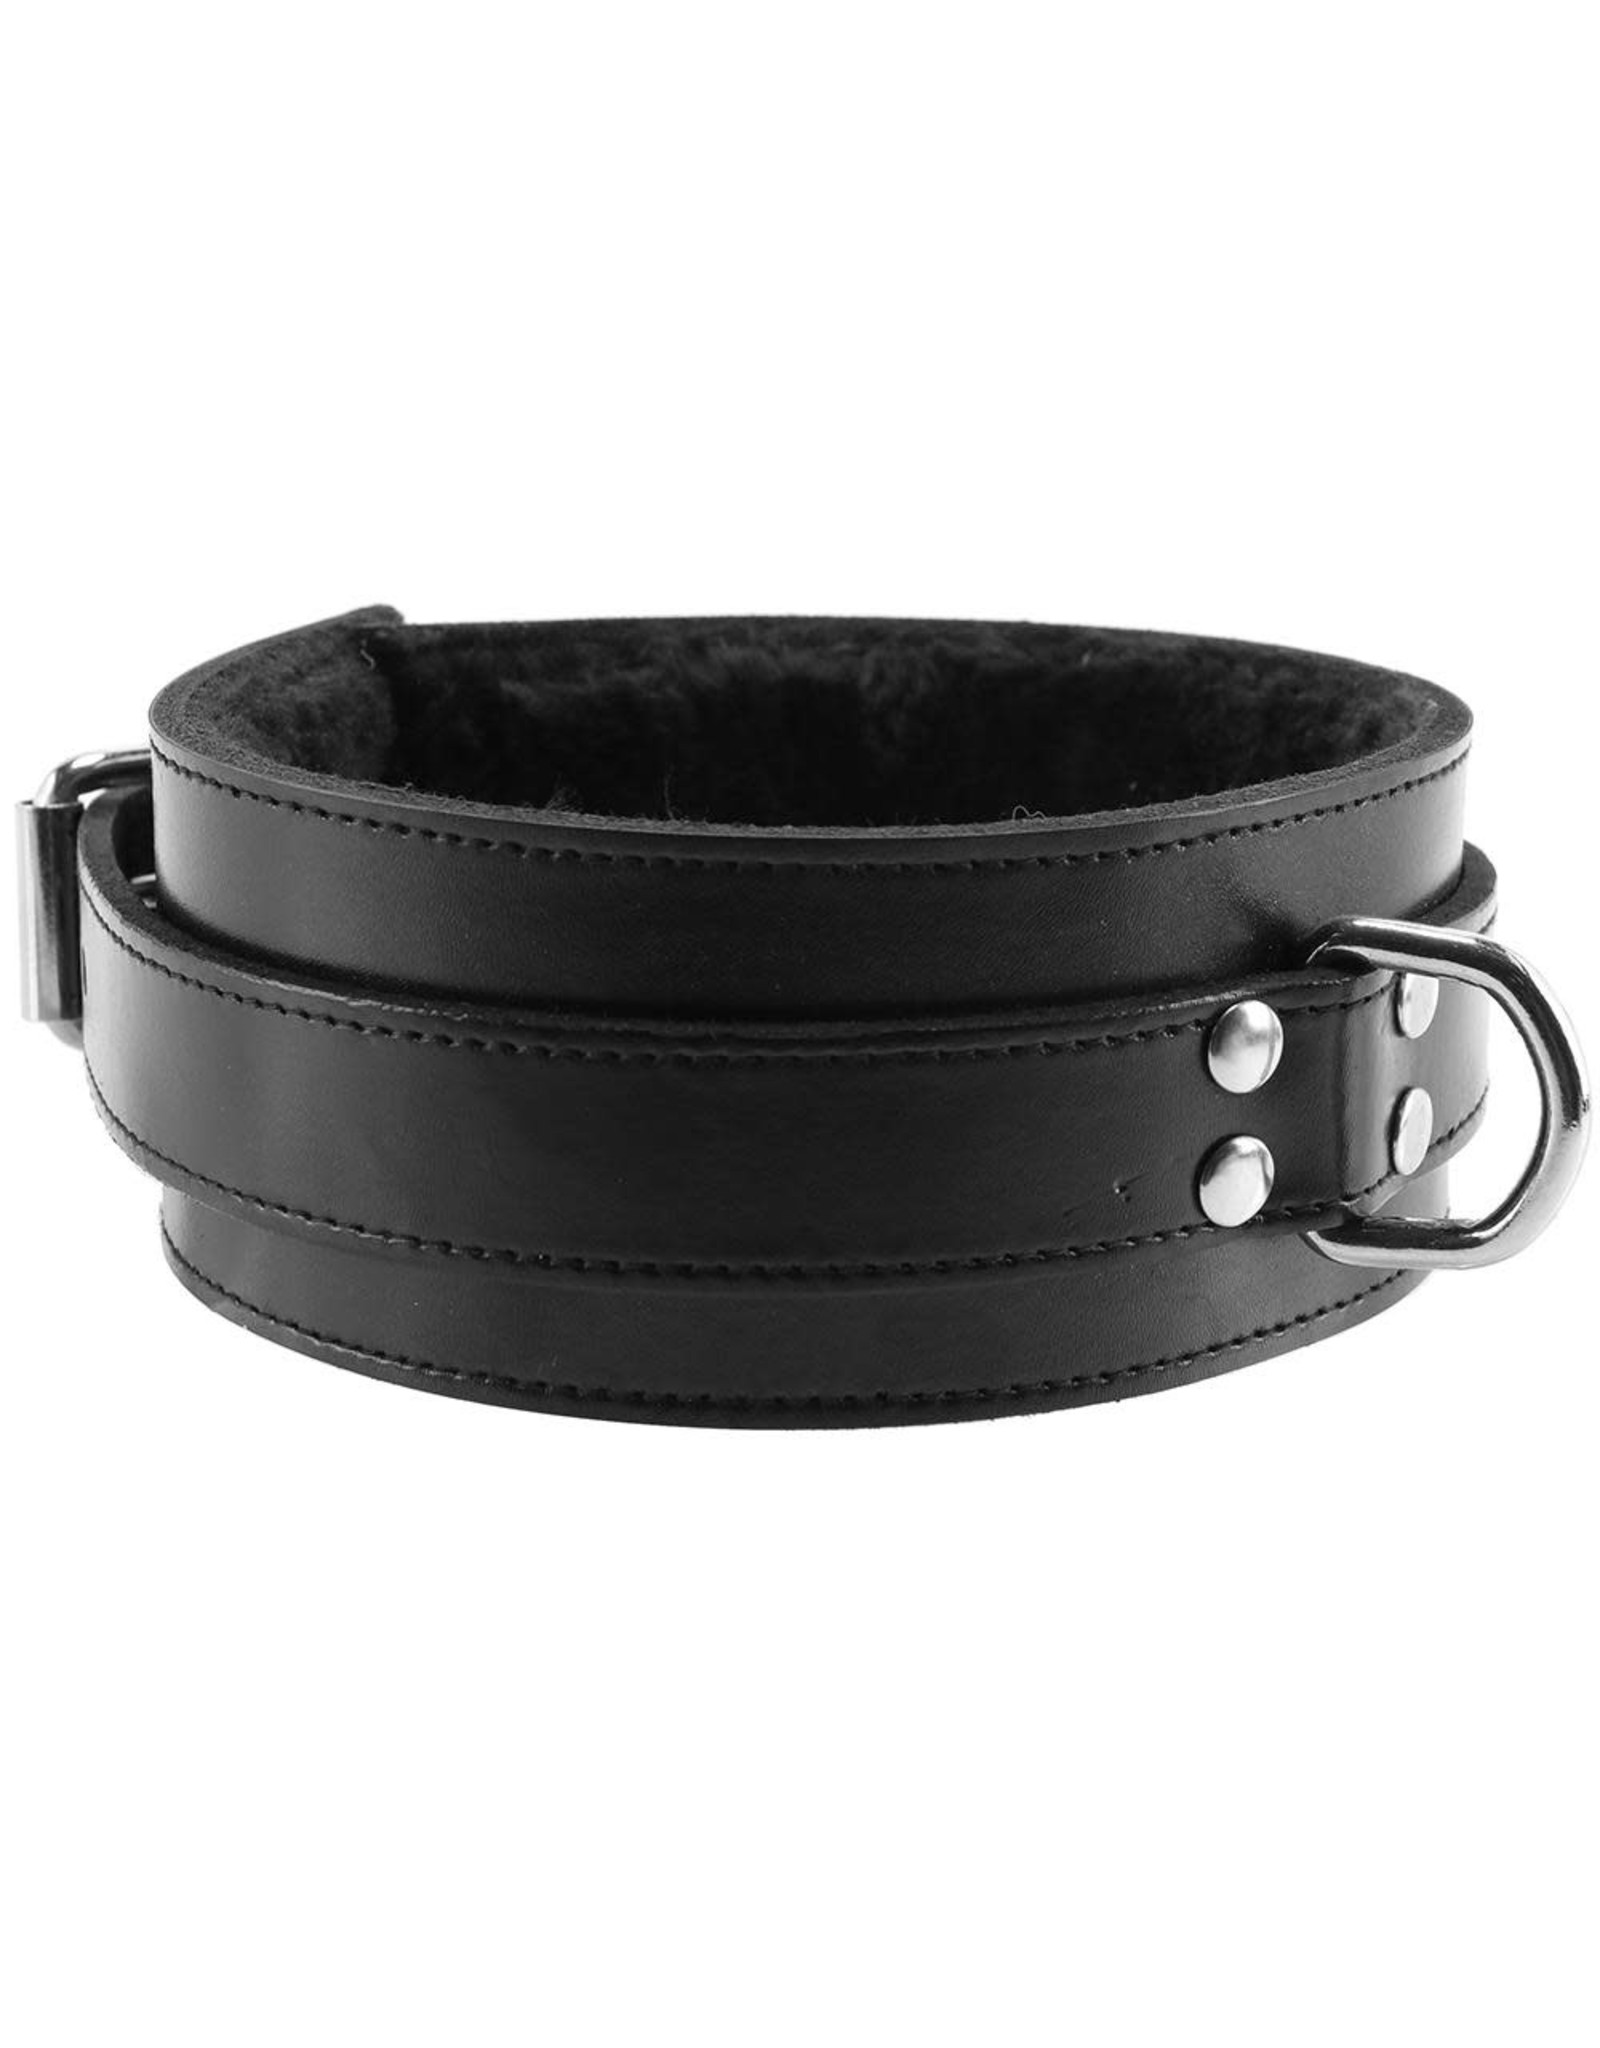 Rouge - Fur Lined Leather Collar - Black